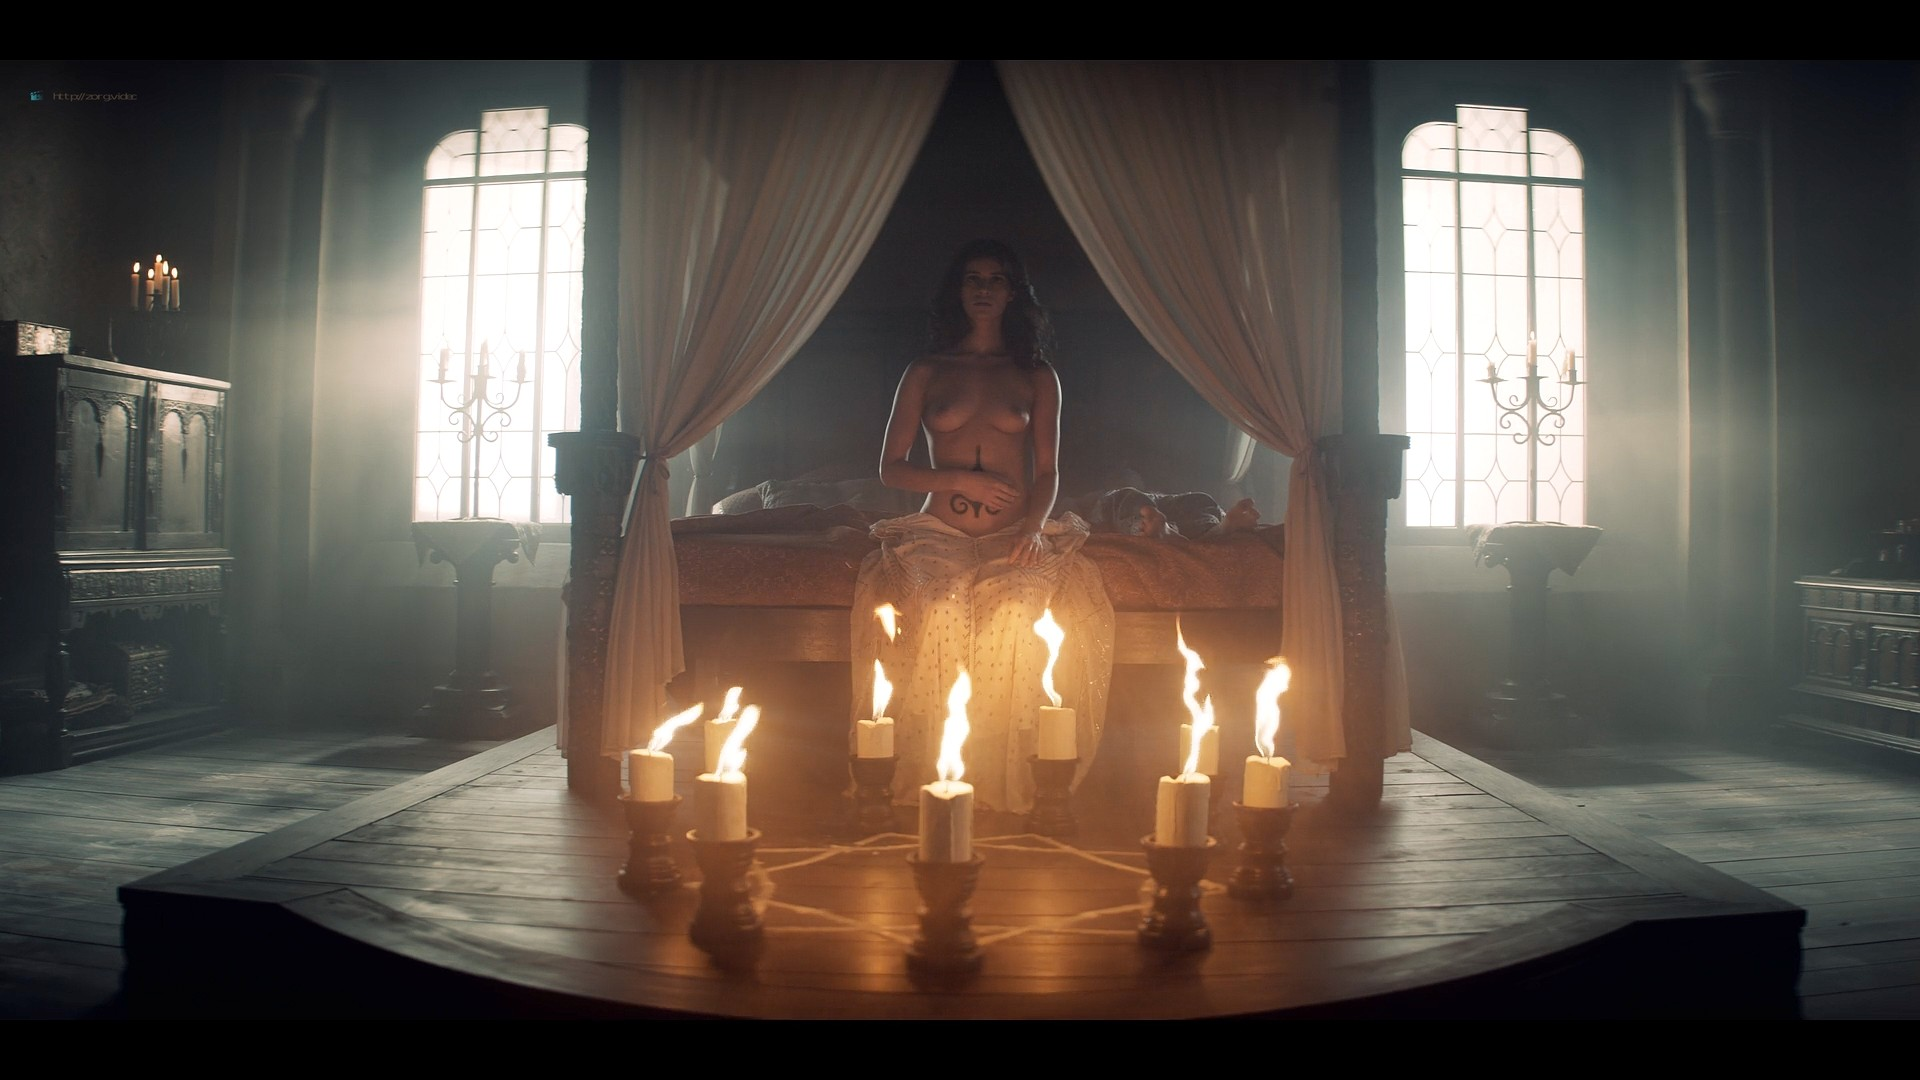 Anya Chalotra nude others nude too - The Witcher (2019) s1e5-6 HD 1080p WEB (12)